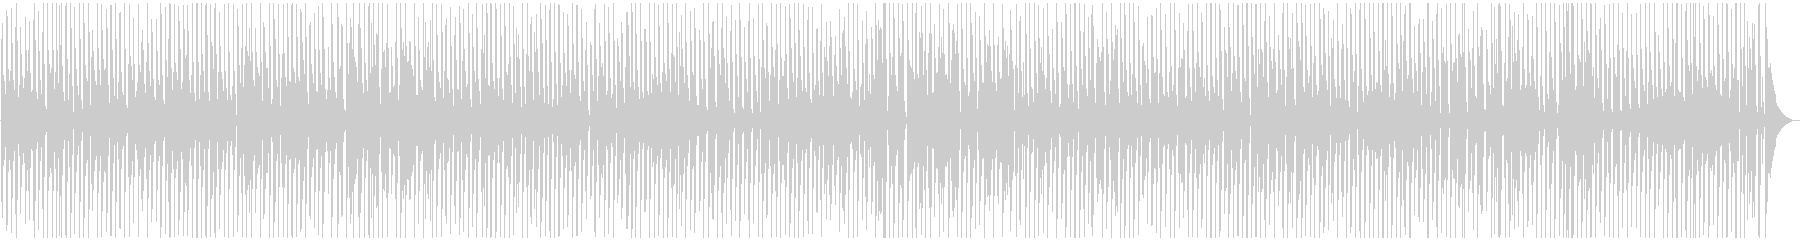 [High sound quality]  Walking jazz with cute tuba's unreproduced waveform